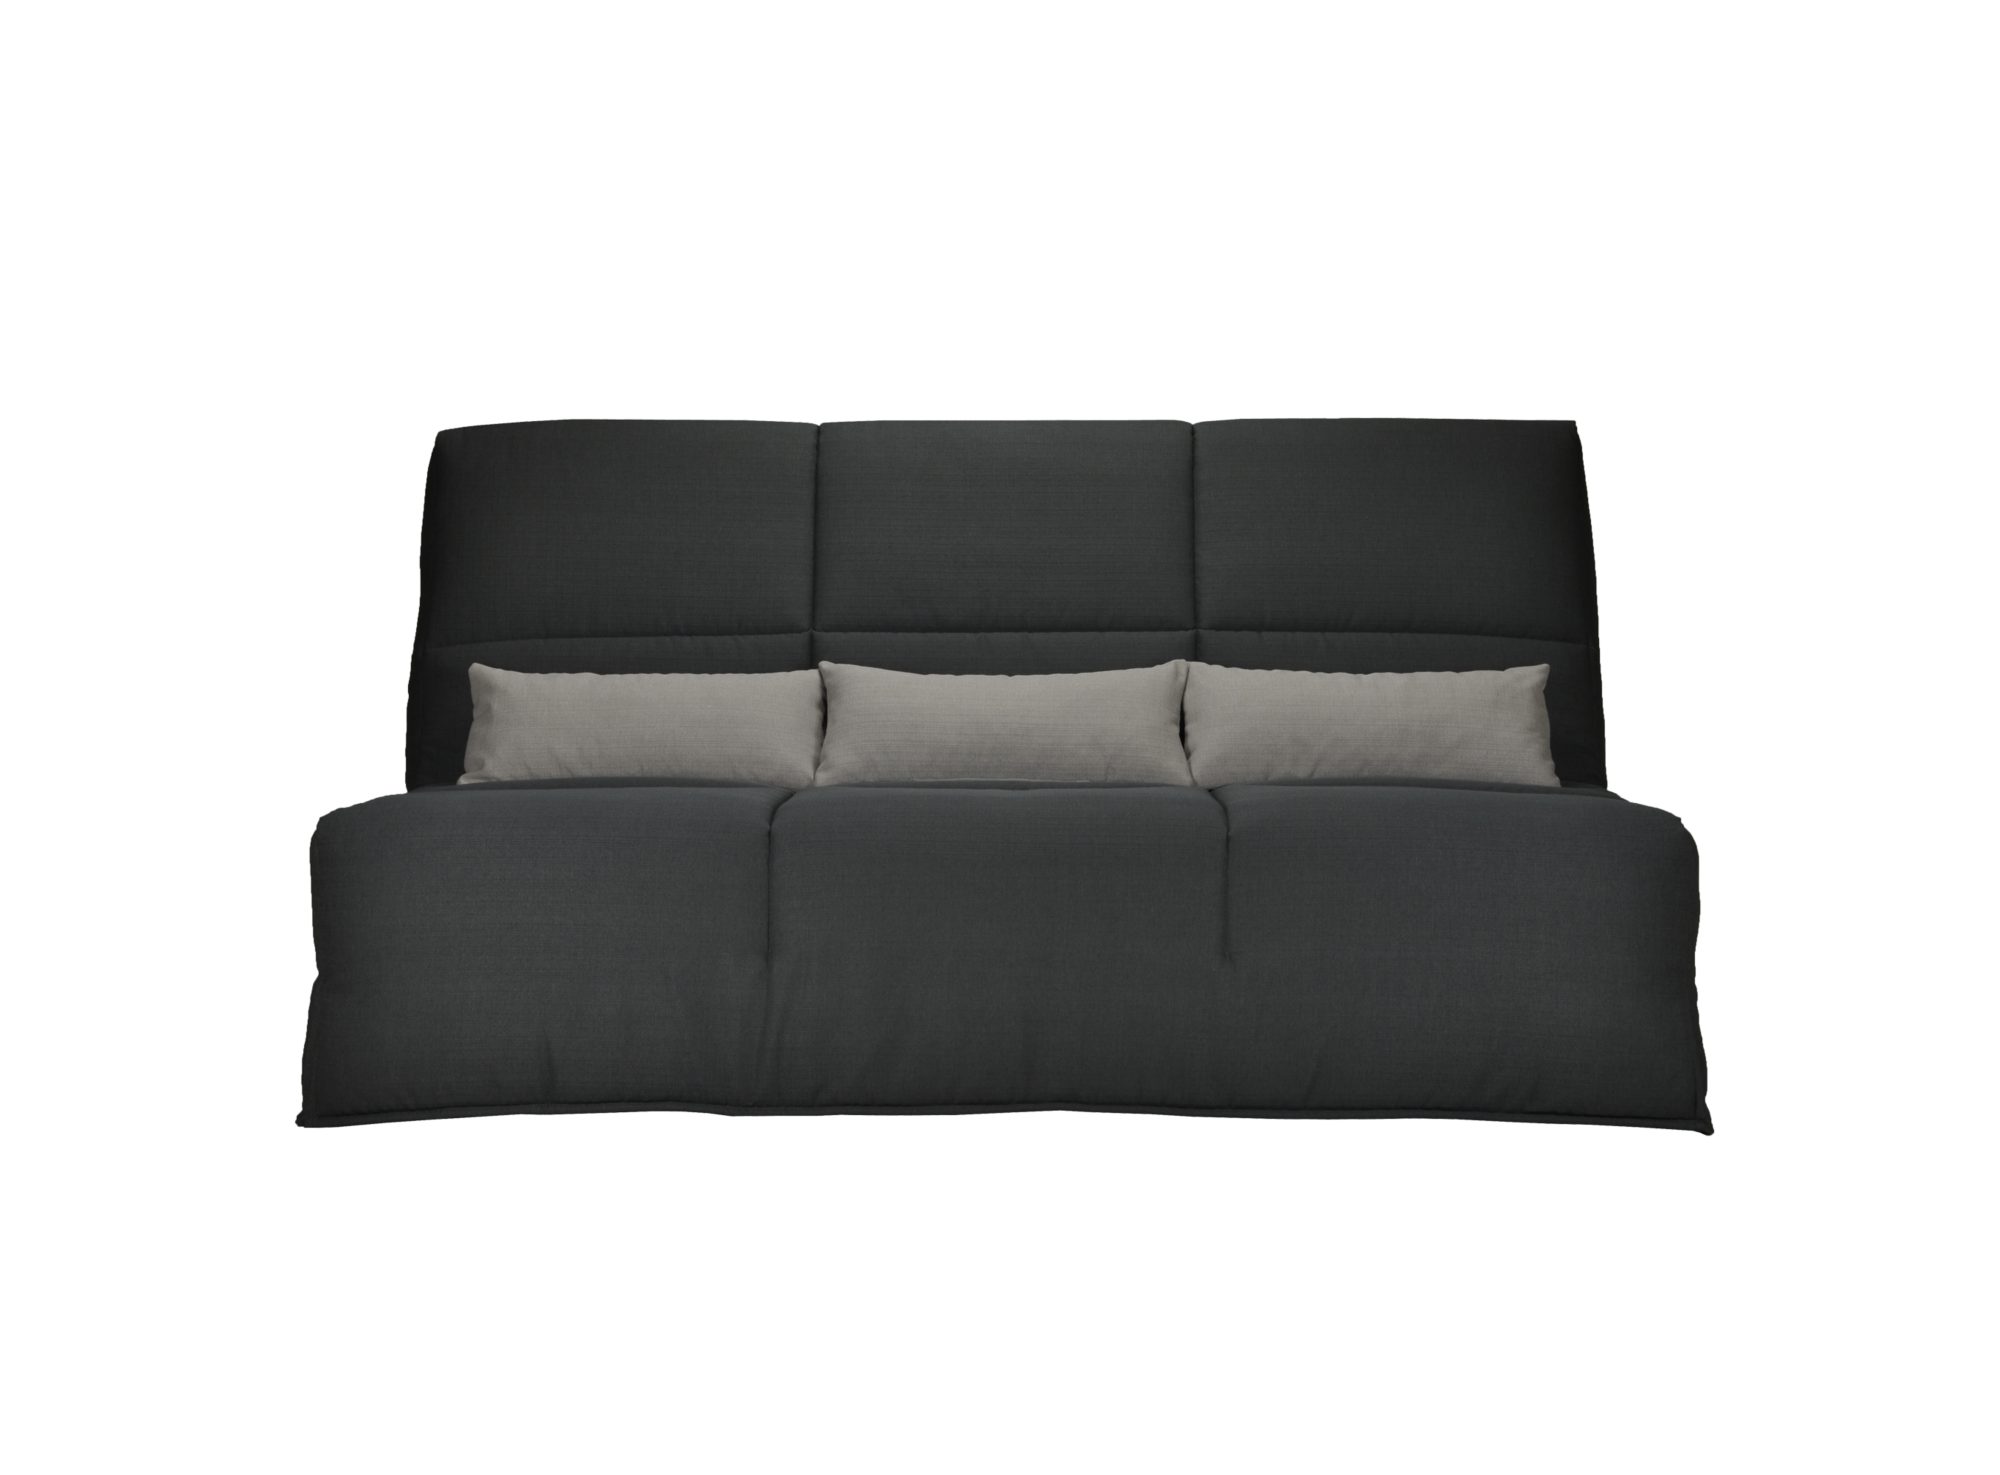 Banquette Clic Clac Bultex Anthracite Gris Clair Fly